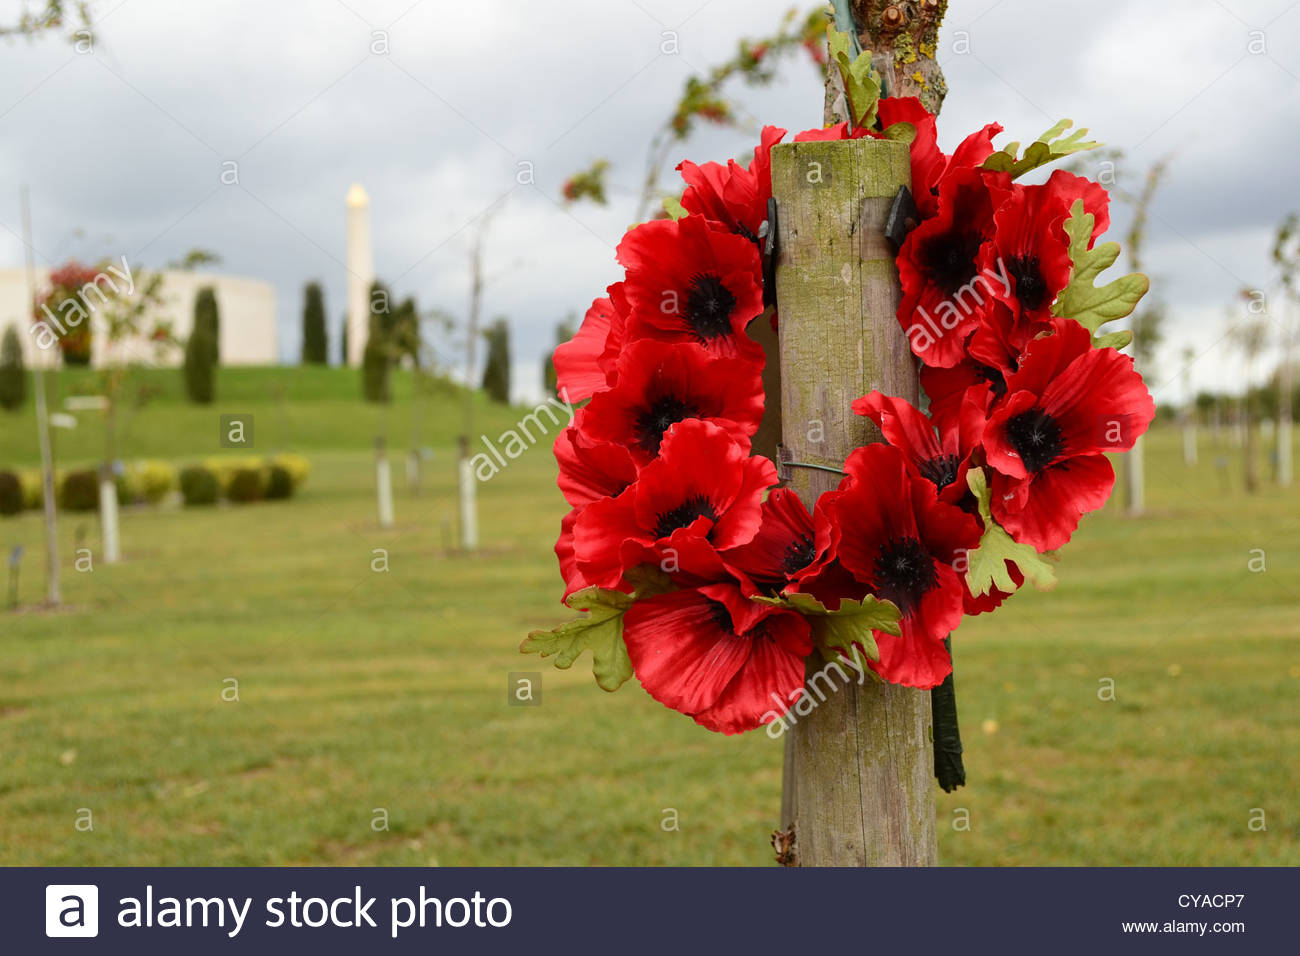 Remembrance poppy wreath on a soldier's memorial tree at the National Memorial Arboretum in Staffordshire, England. - Stock Image